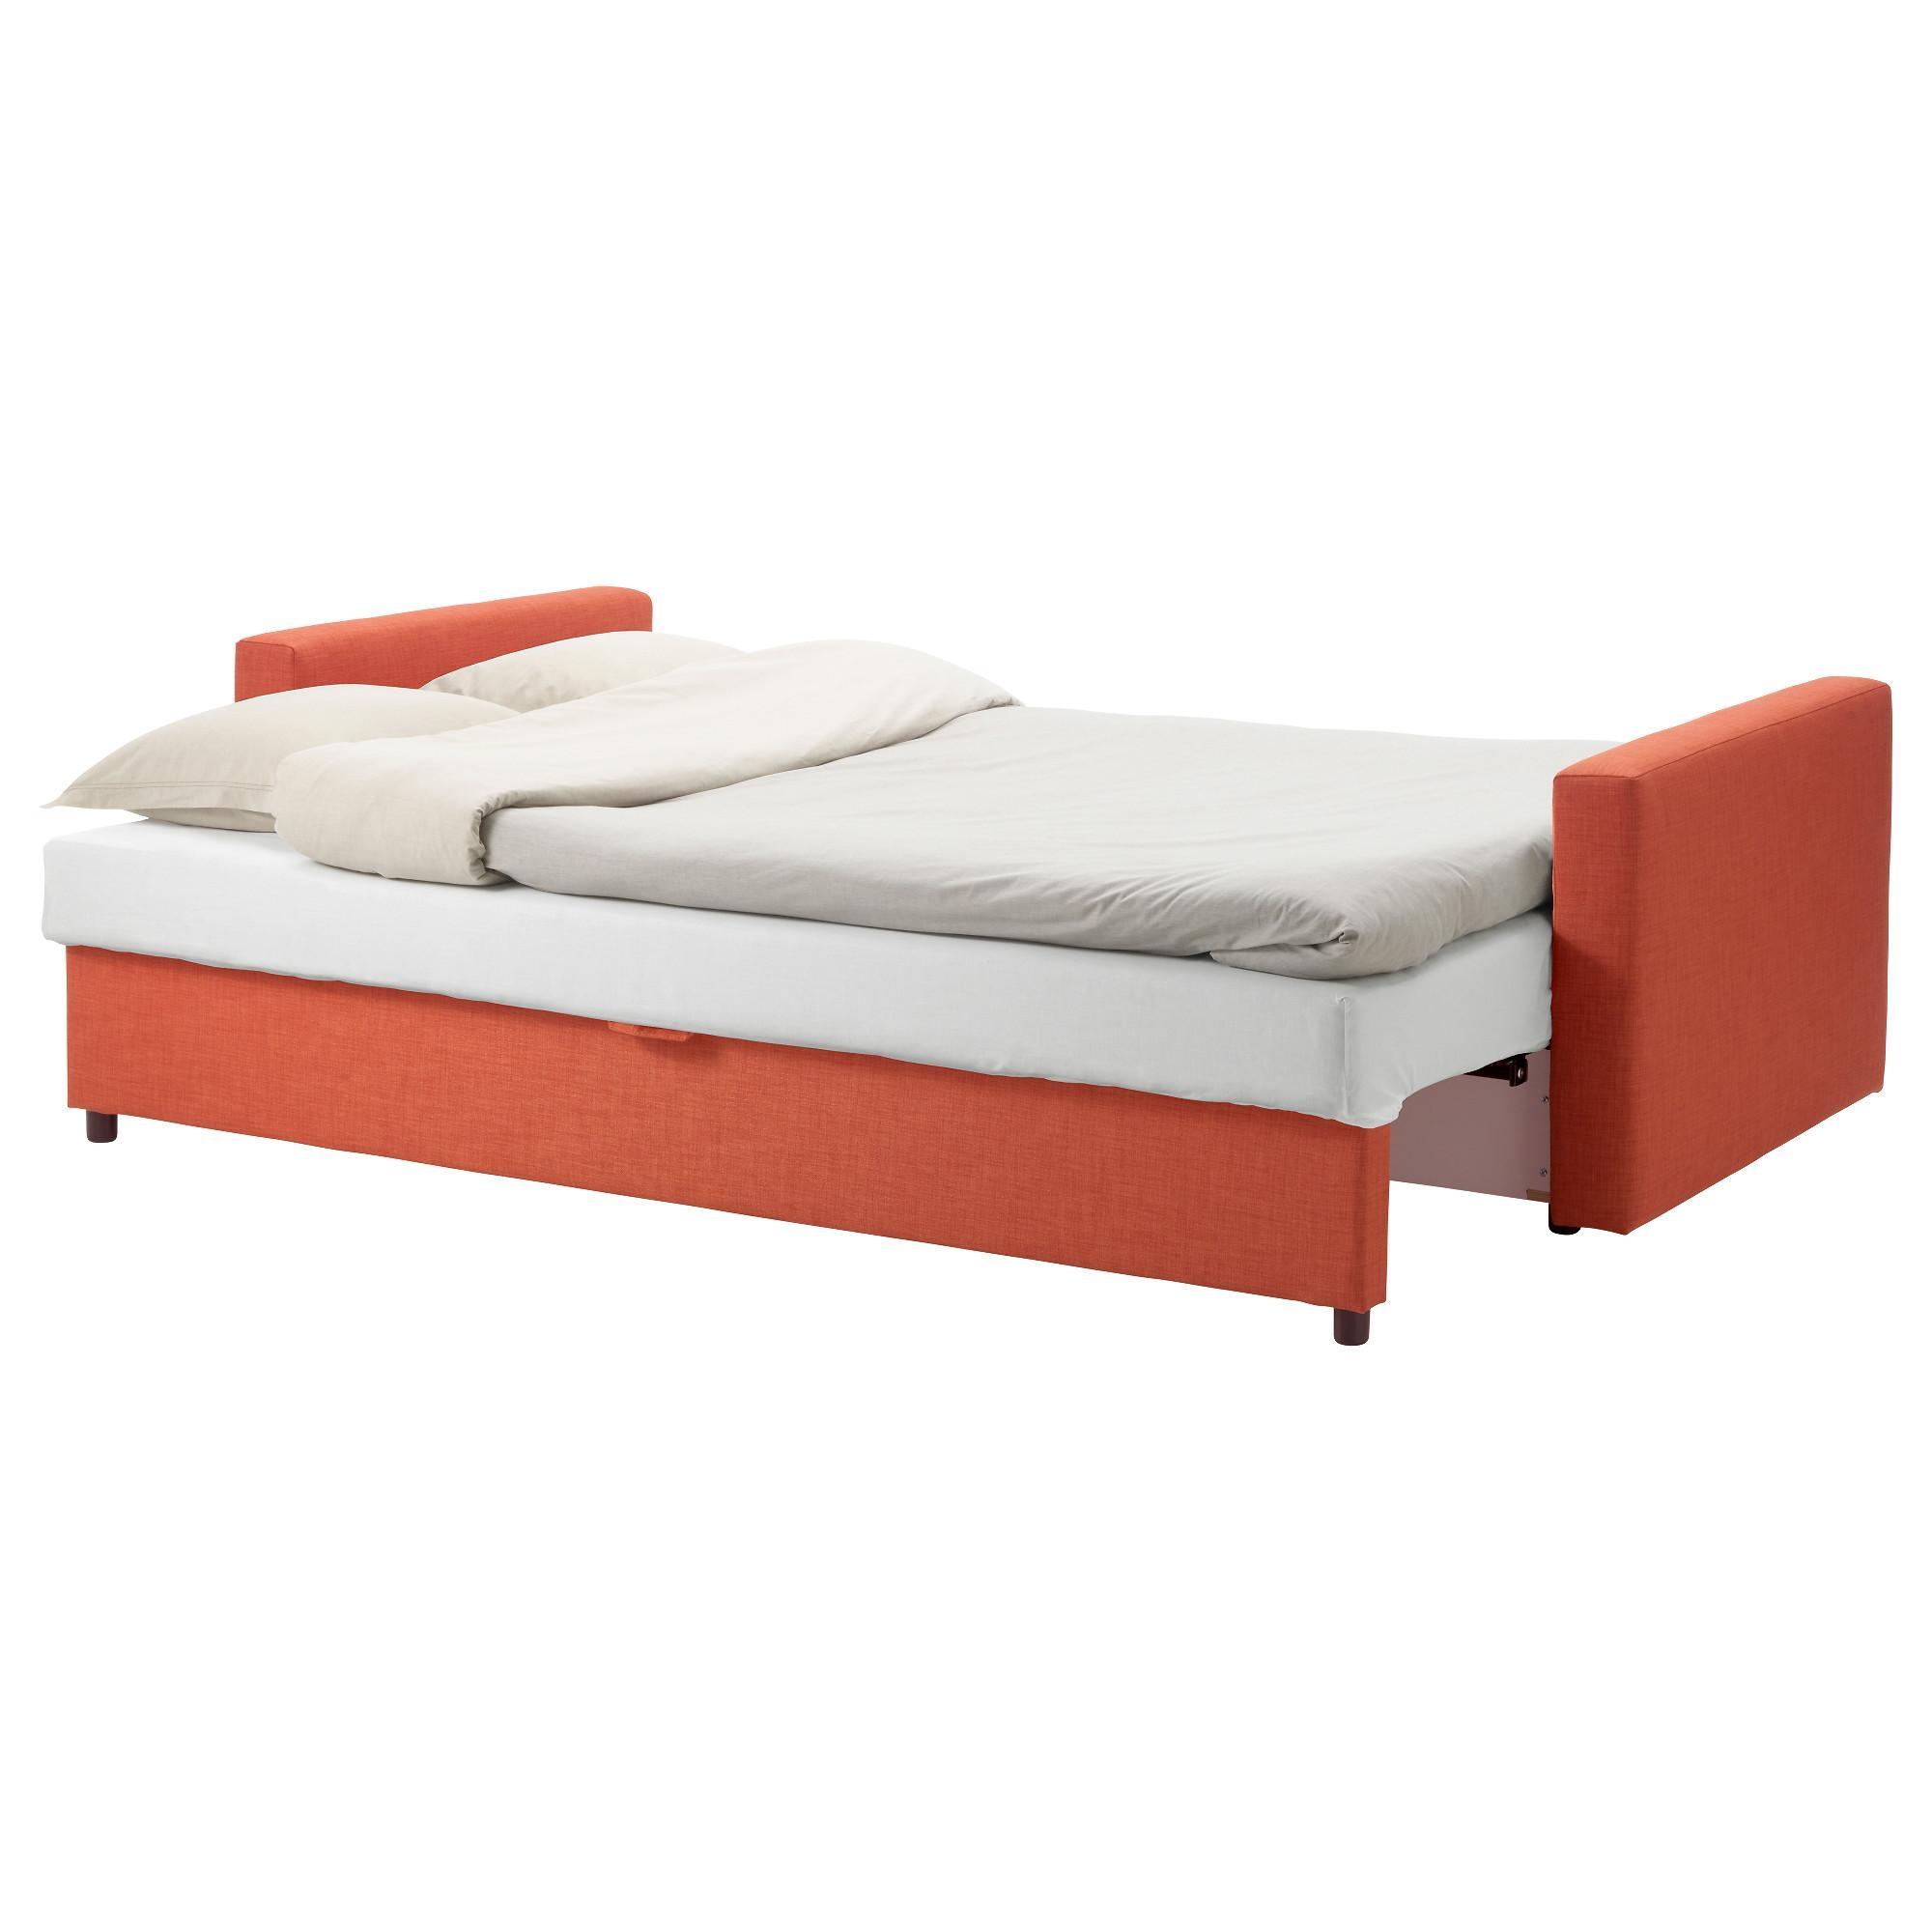 Friheten Three Seat Sofa Bed Skiftebo Dark Orange – Ikea Inside Orange Ikea Sofas (View 5 of 20)